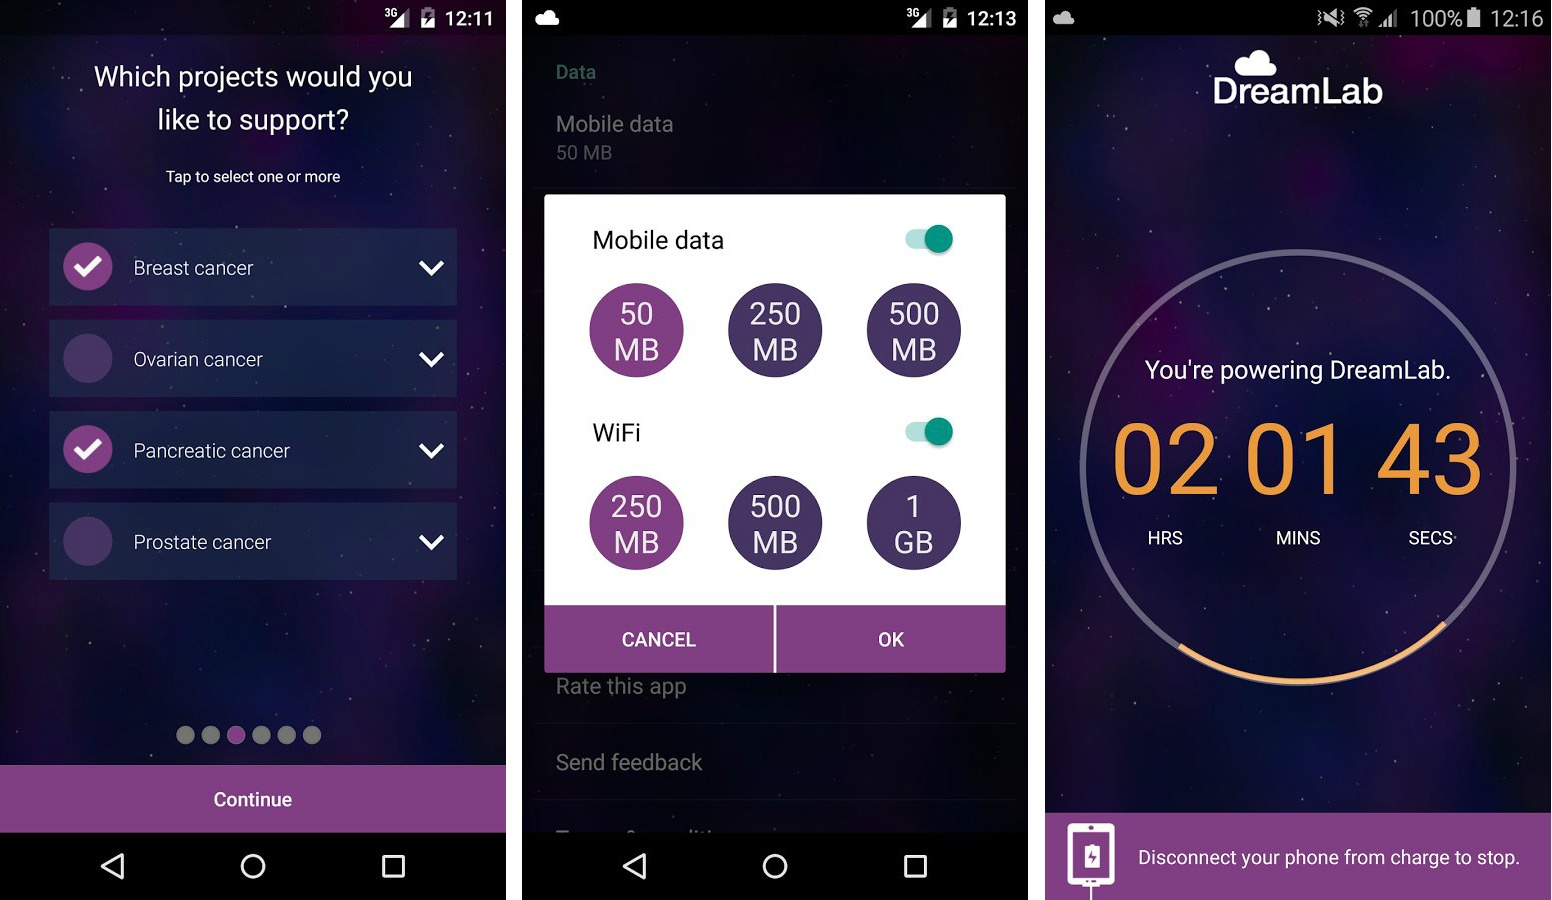 DreamLab App by Vodafone Permits Android Users to Assist in Finding Cure for Cancer